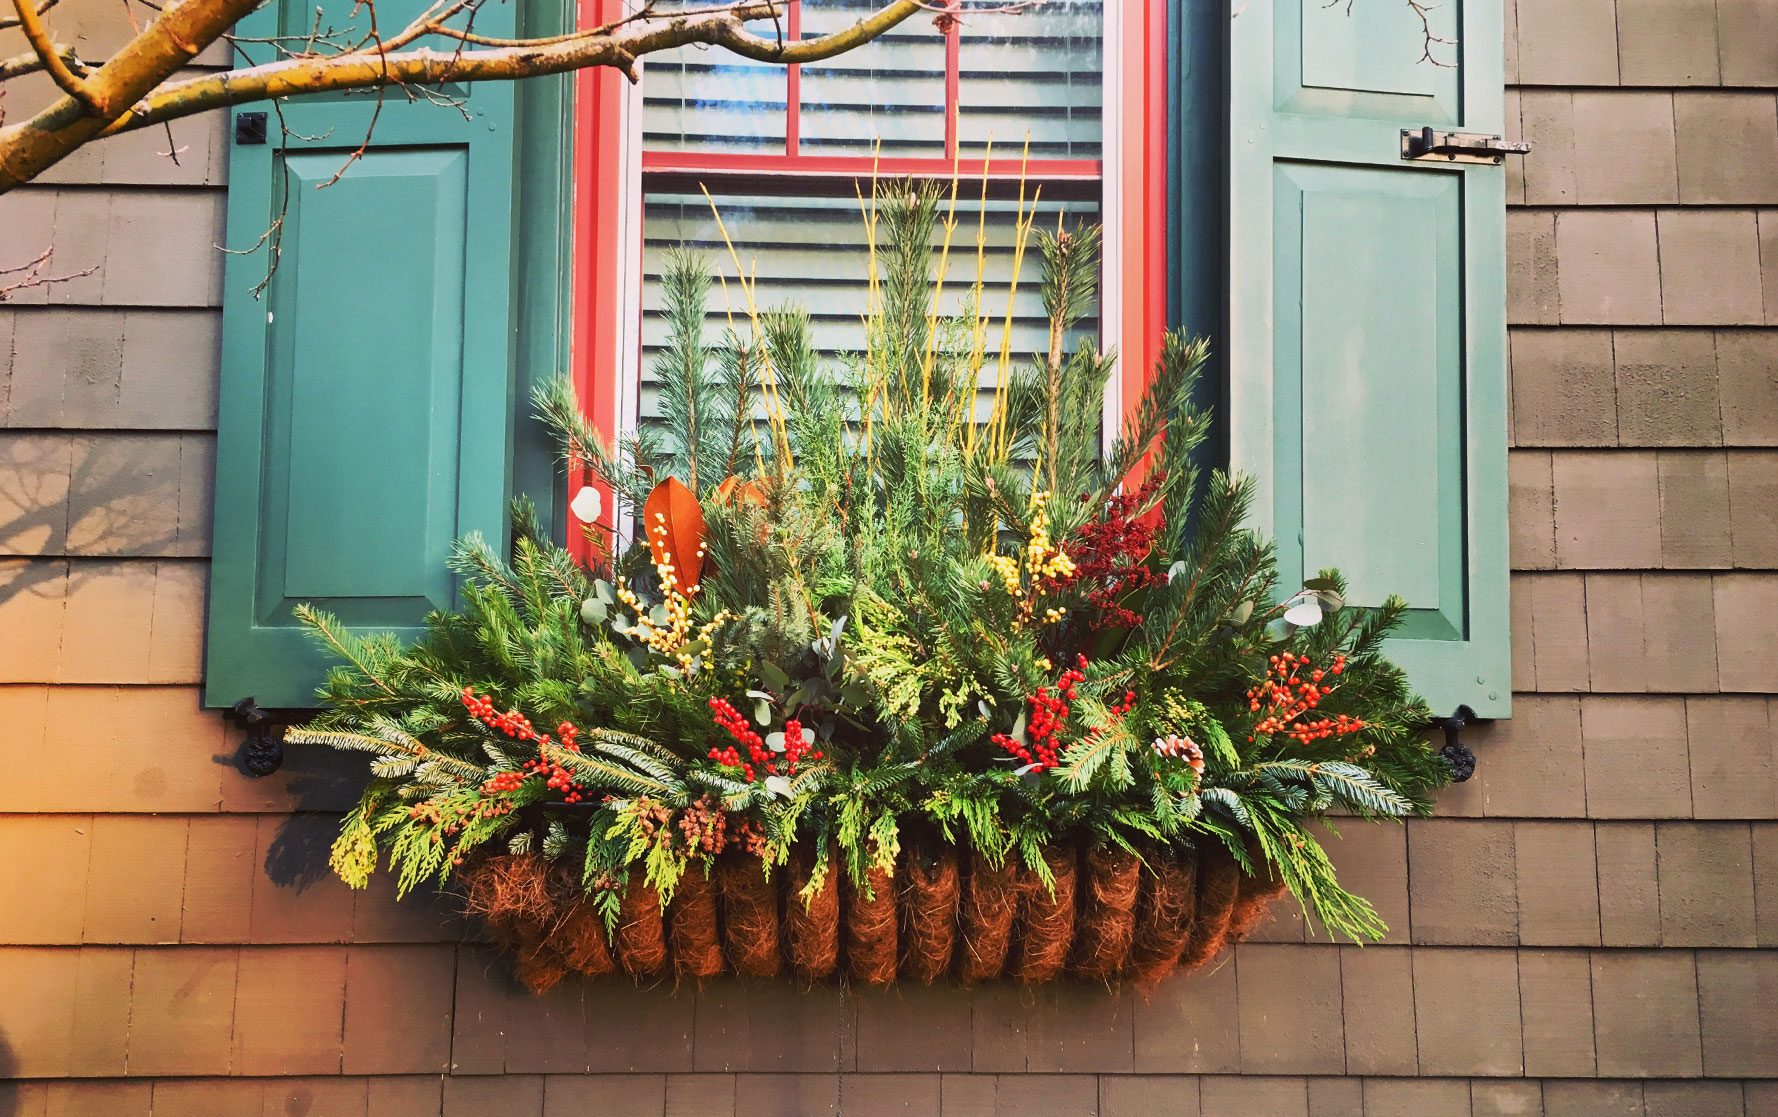 Window Box Arrangement with Pine and Holly Berries